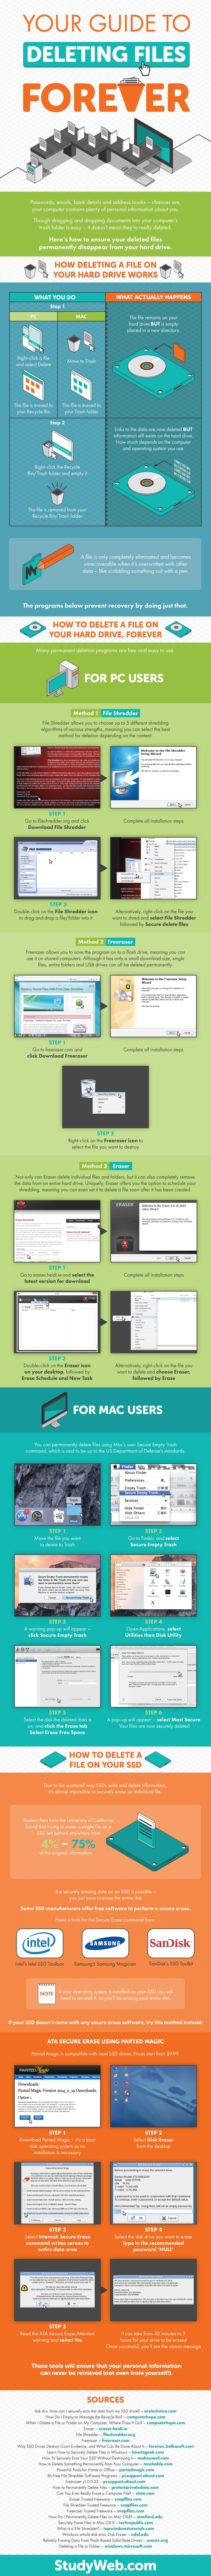 How Can You Make Sure Your Files Are Deleted Forever? |via`tko MakeUseOf